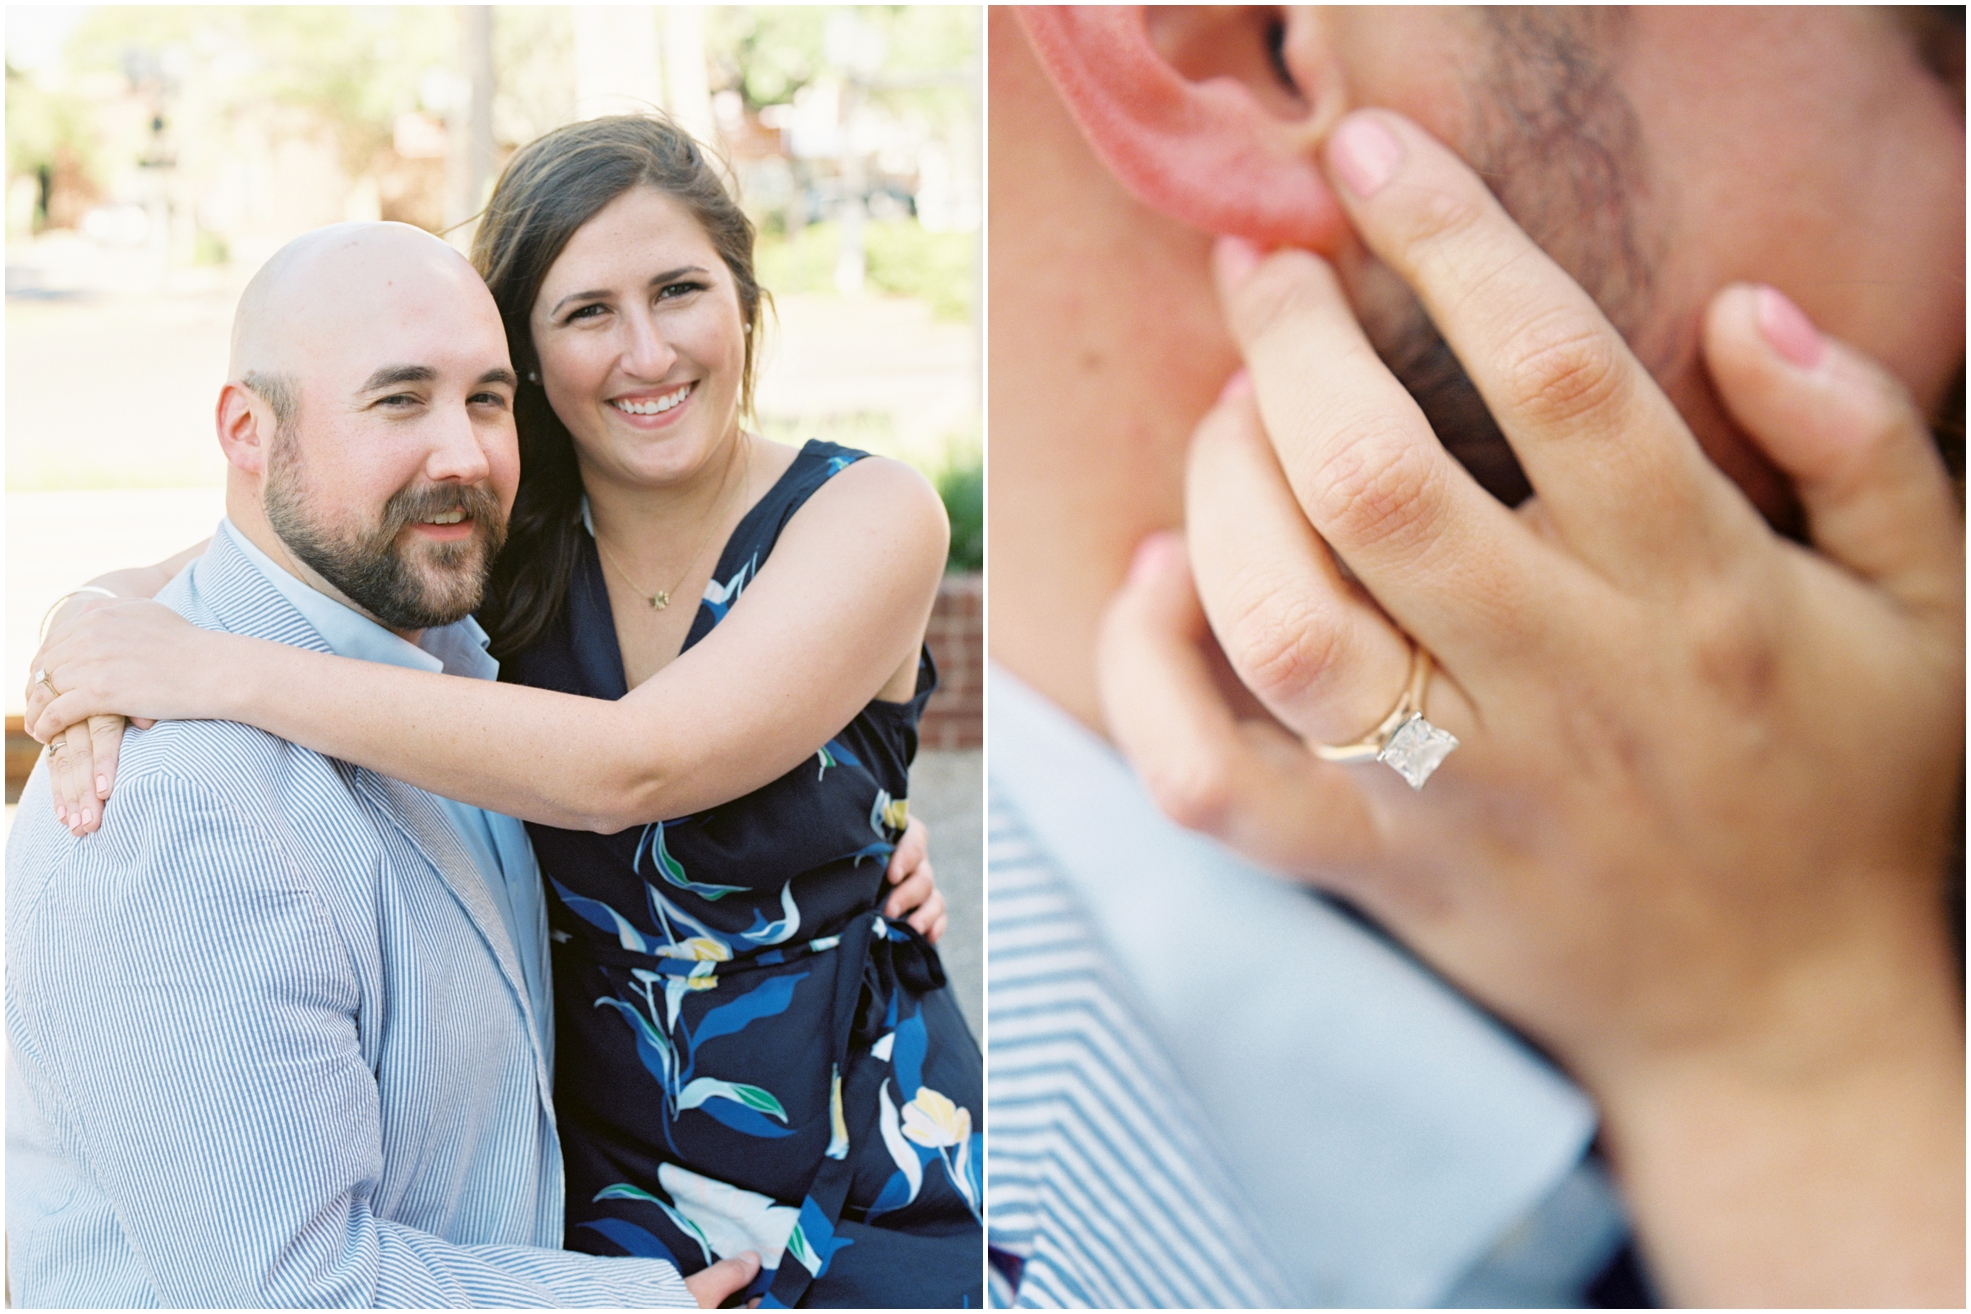 Lisa Silva Photography- Jacksonville, St. Augustine, Amelia Island, Ponte Vedra Beach, North East Florida Fine Art Film Photographer- Engagement Session in Historic Downtown Fernandina Beach- Amelia Island Wedding Photographer_0006.jpg